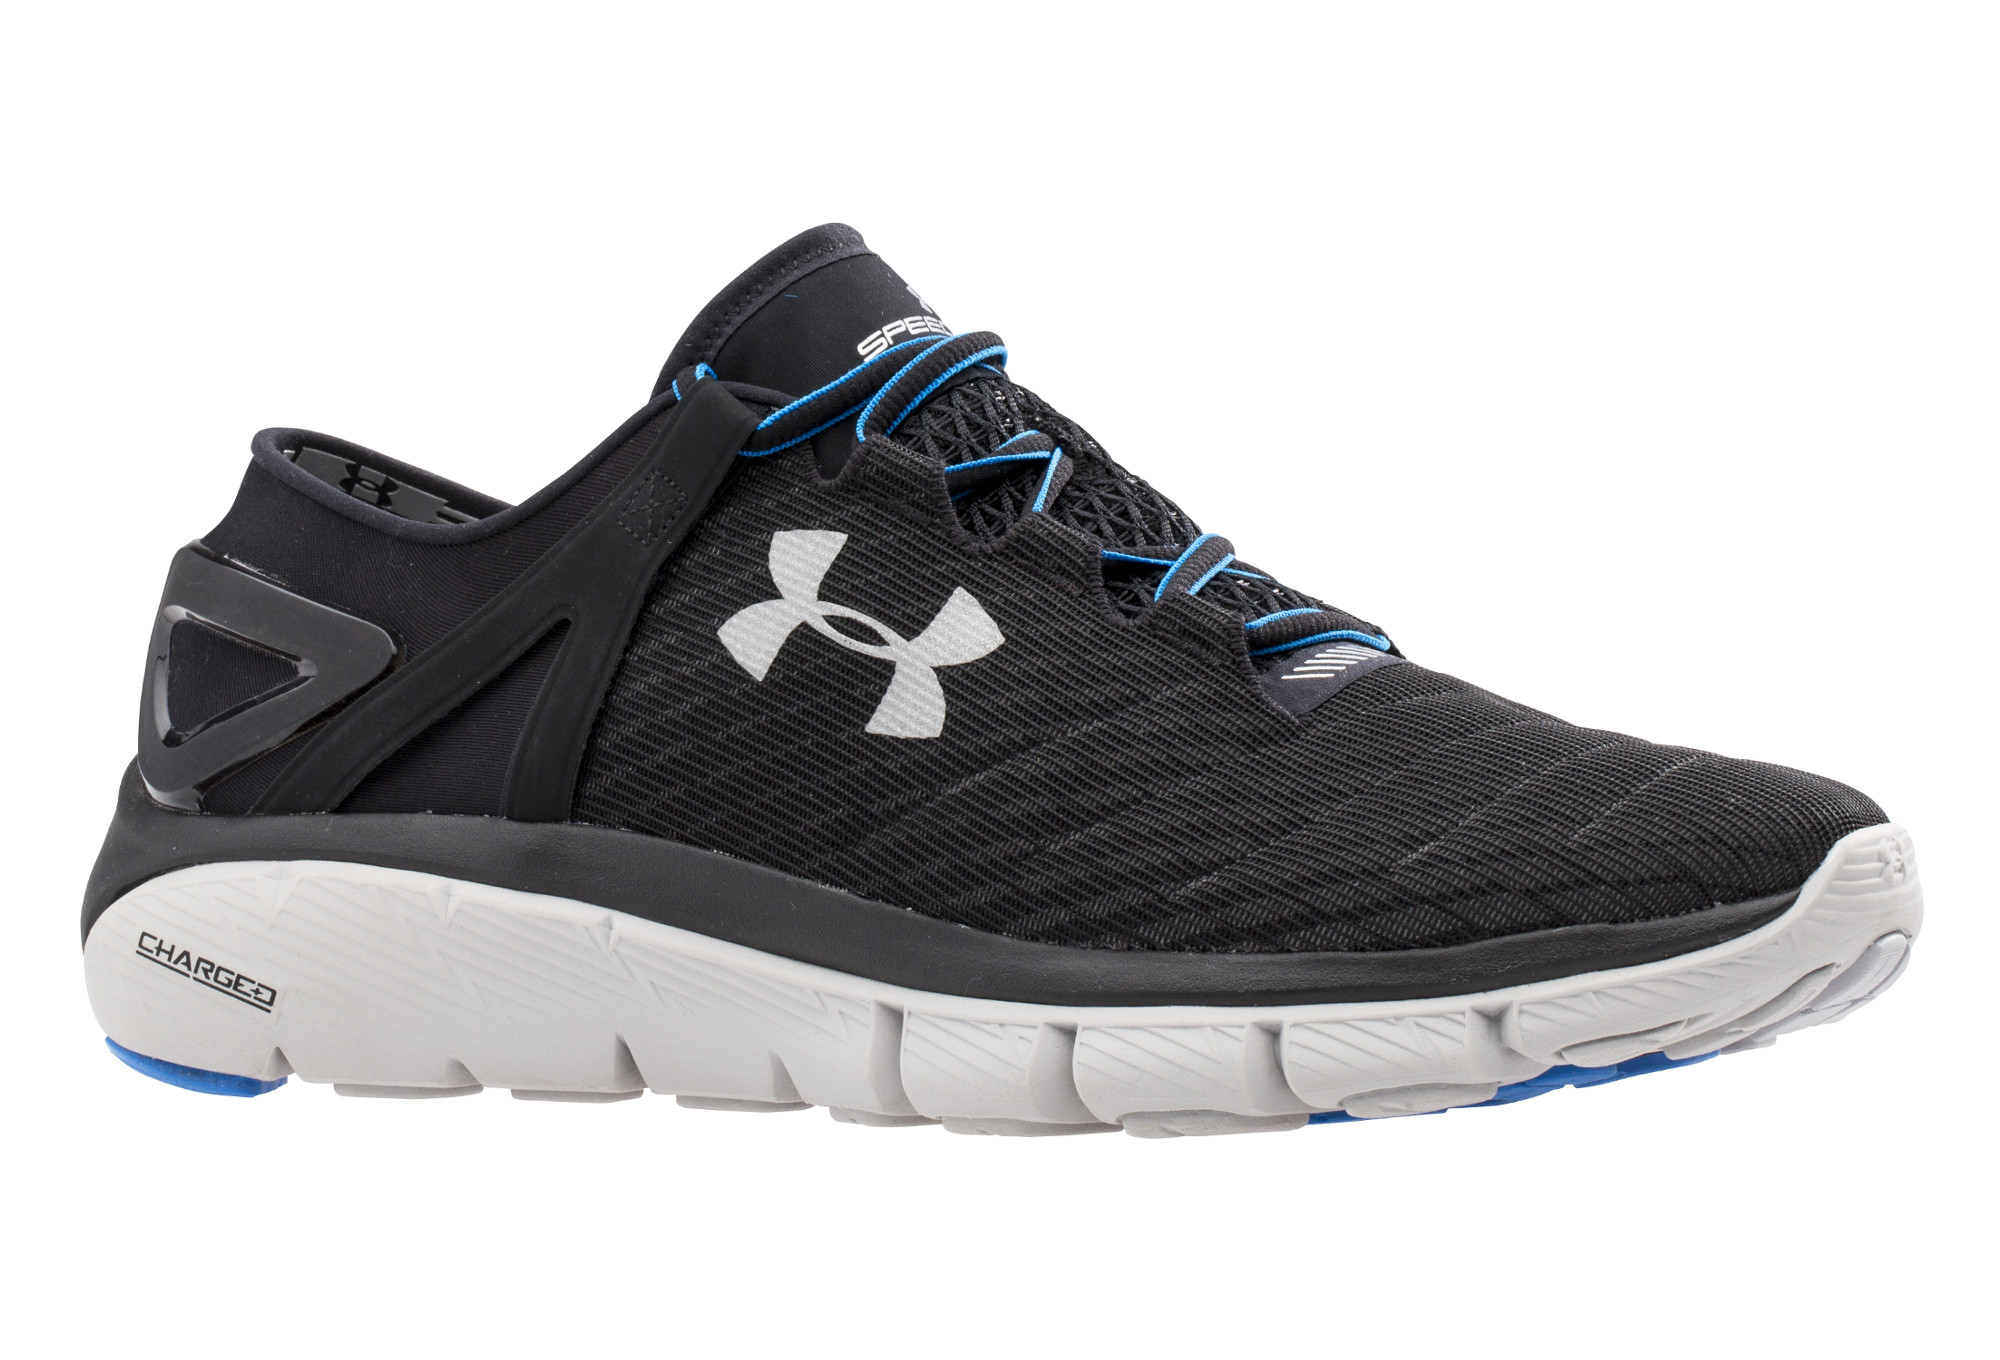 under armour speedform fortis night pair of shoes black. Black Bedroom Furniture Sets. Home Design Ideas